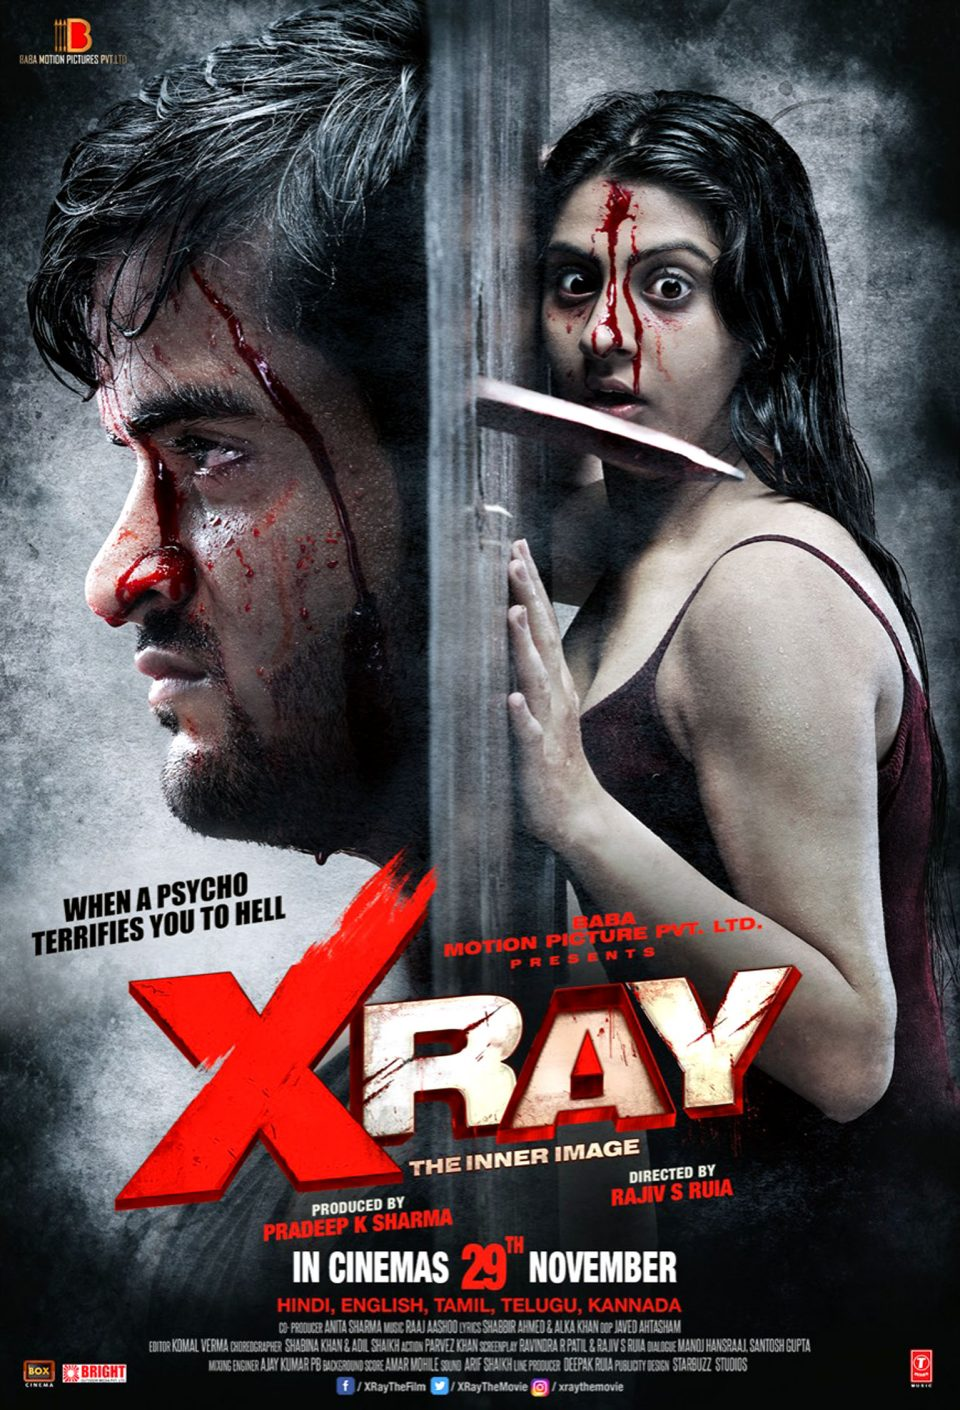 X Ray – The Inner Image A Psychological Thriller opening day collection is 1.15 Crore